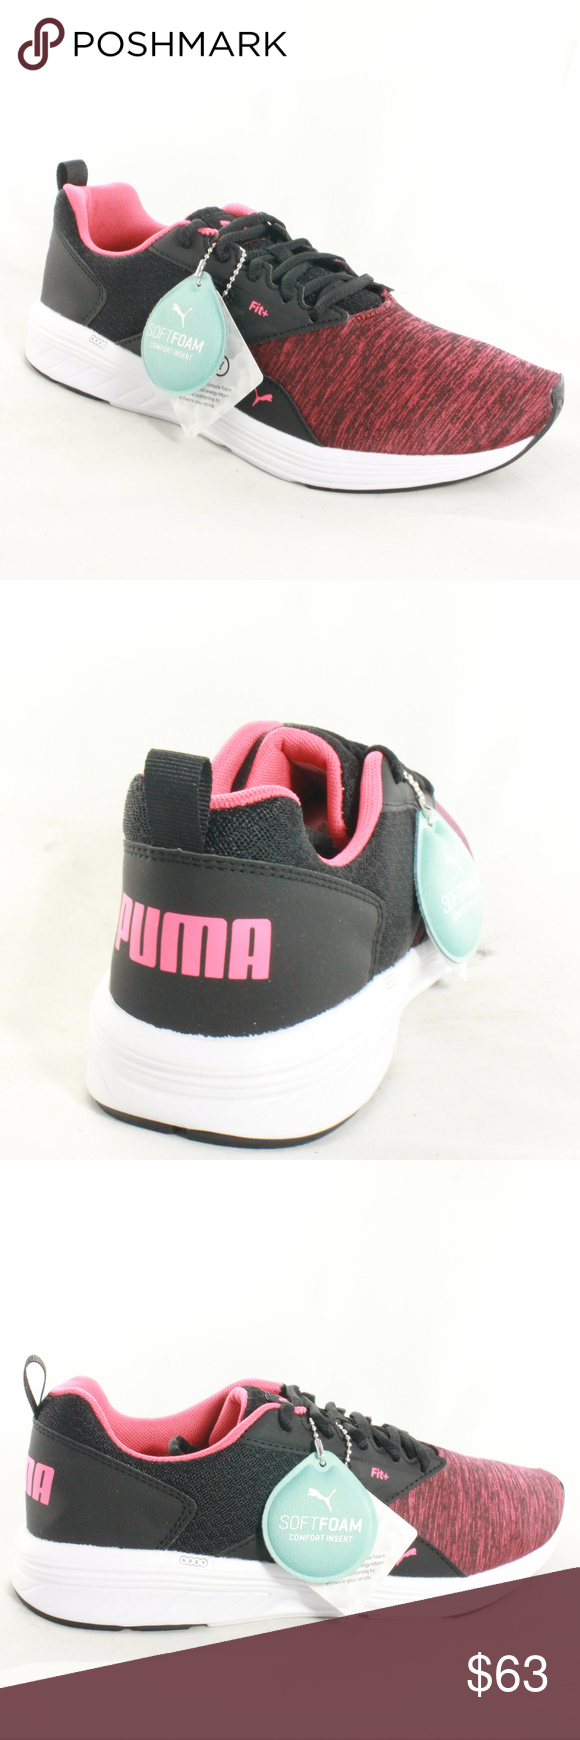 b0f6e898249 New PUMA NRGY Comet Paradise Unisex Running Shoes All new running shoes